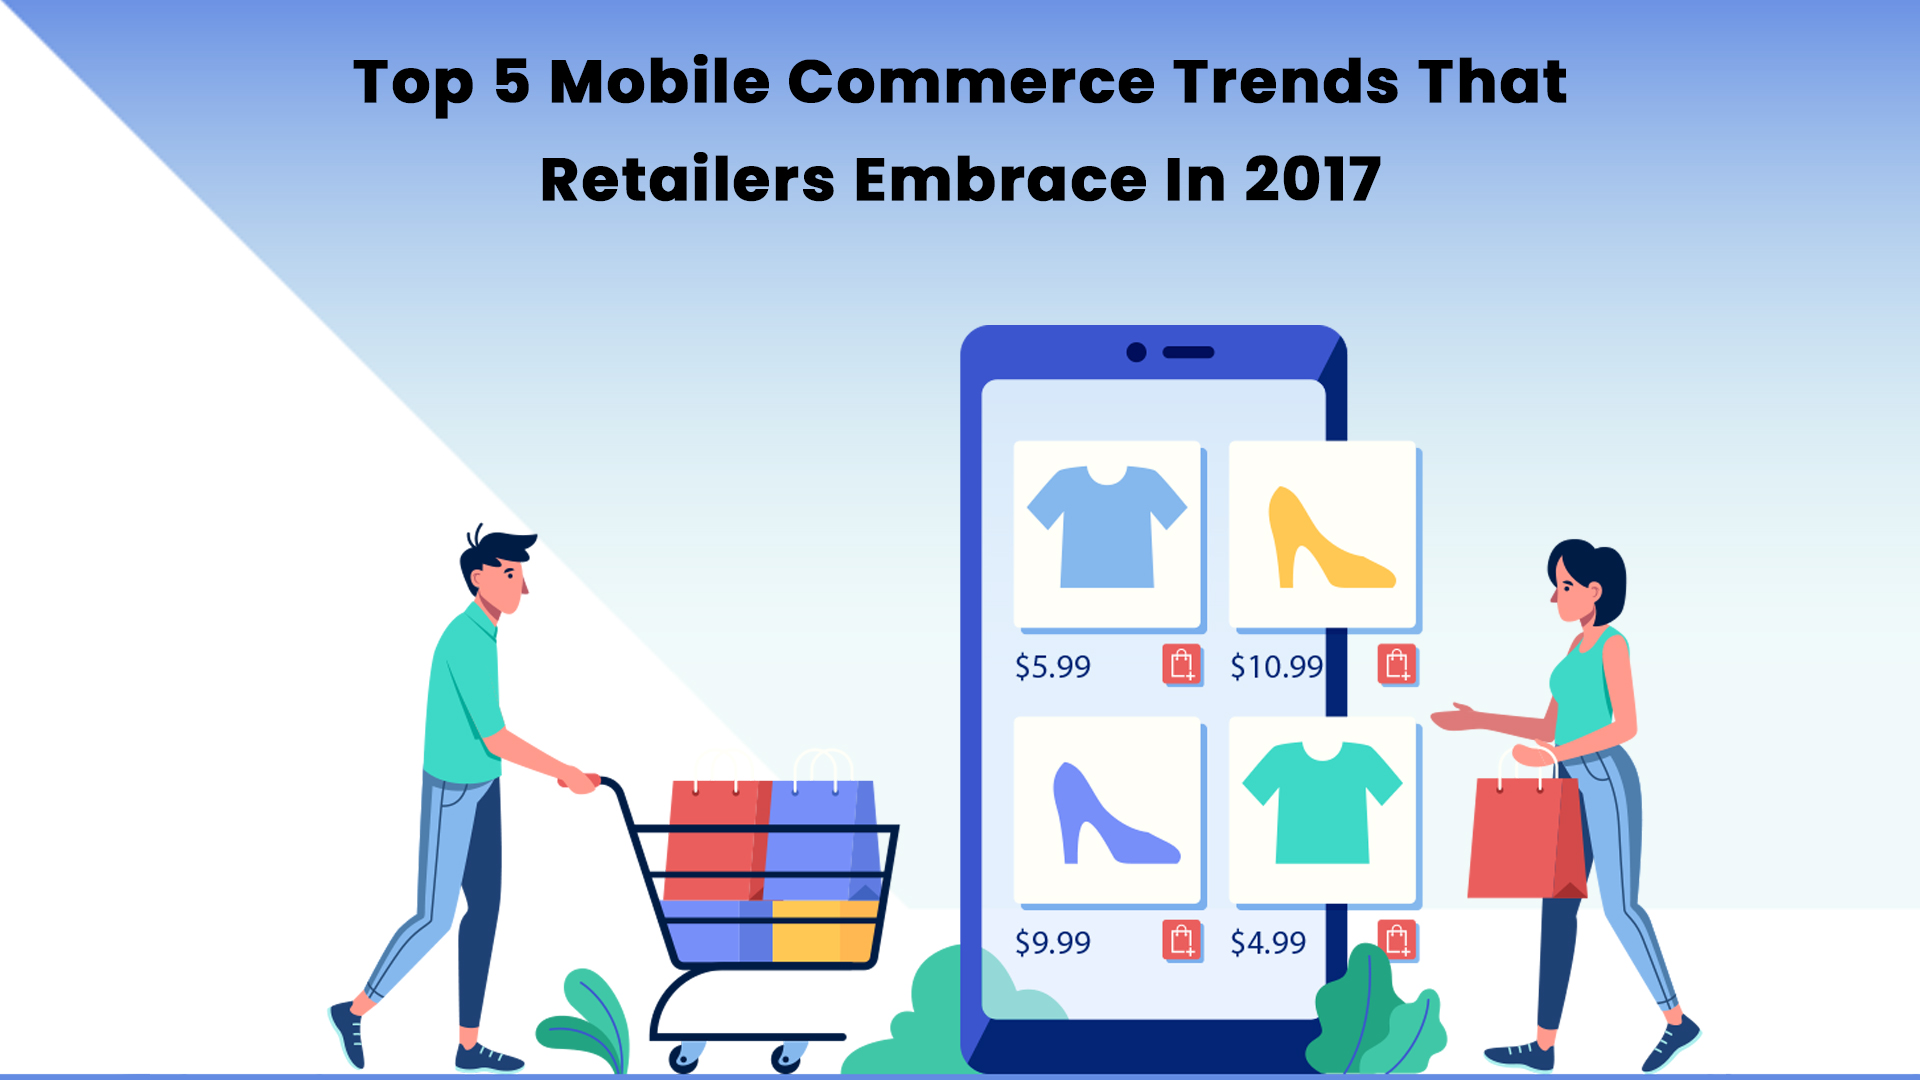 Top 5 Mobile Commerce Trends That Retailers Embrace In 2017